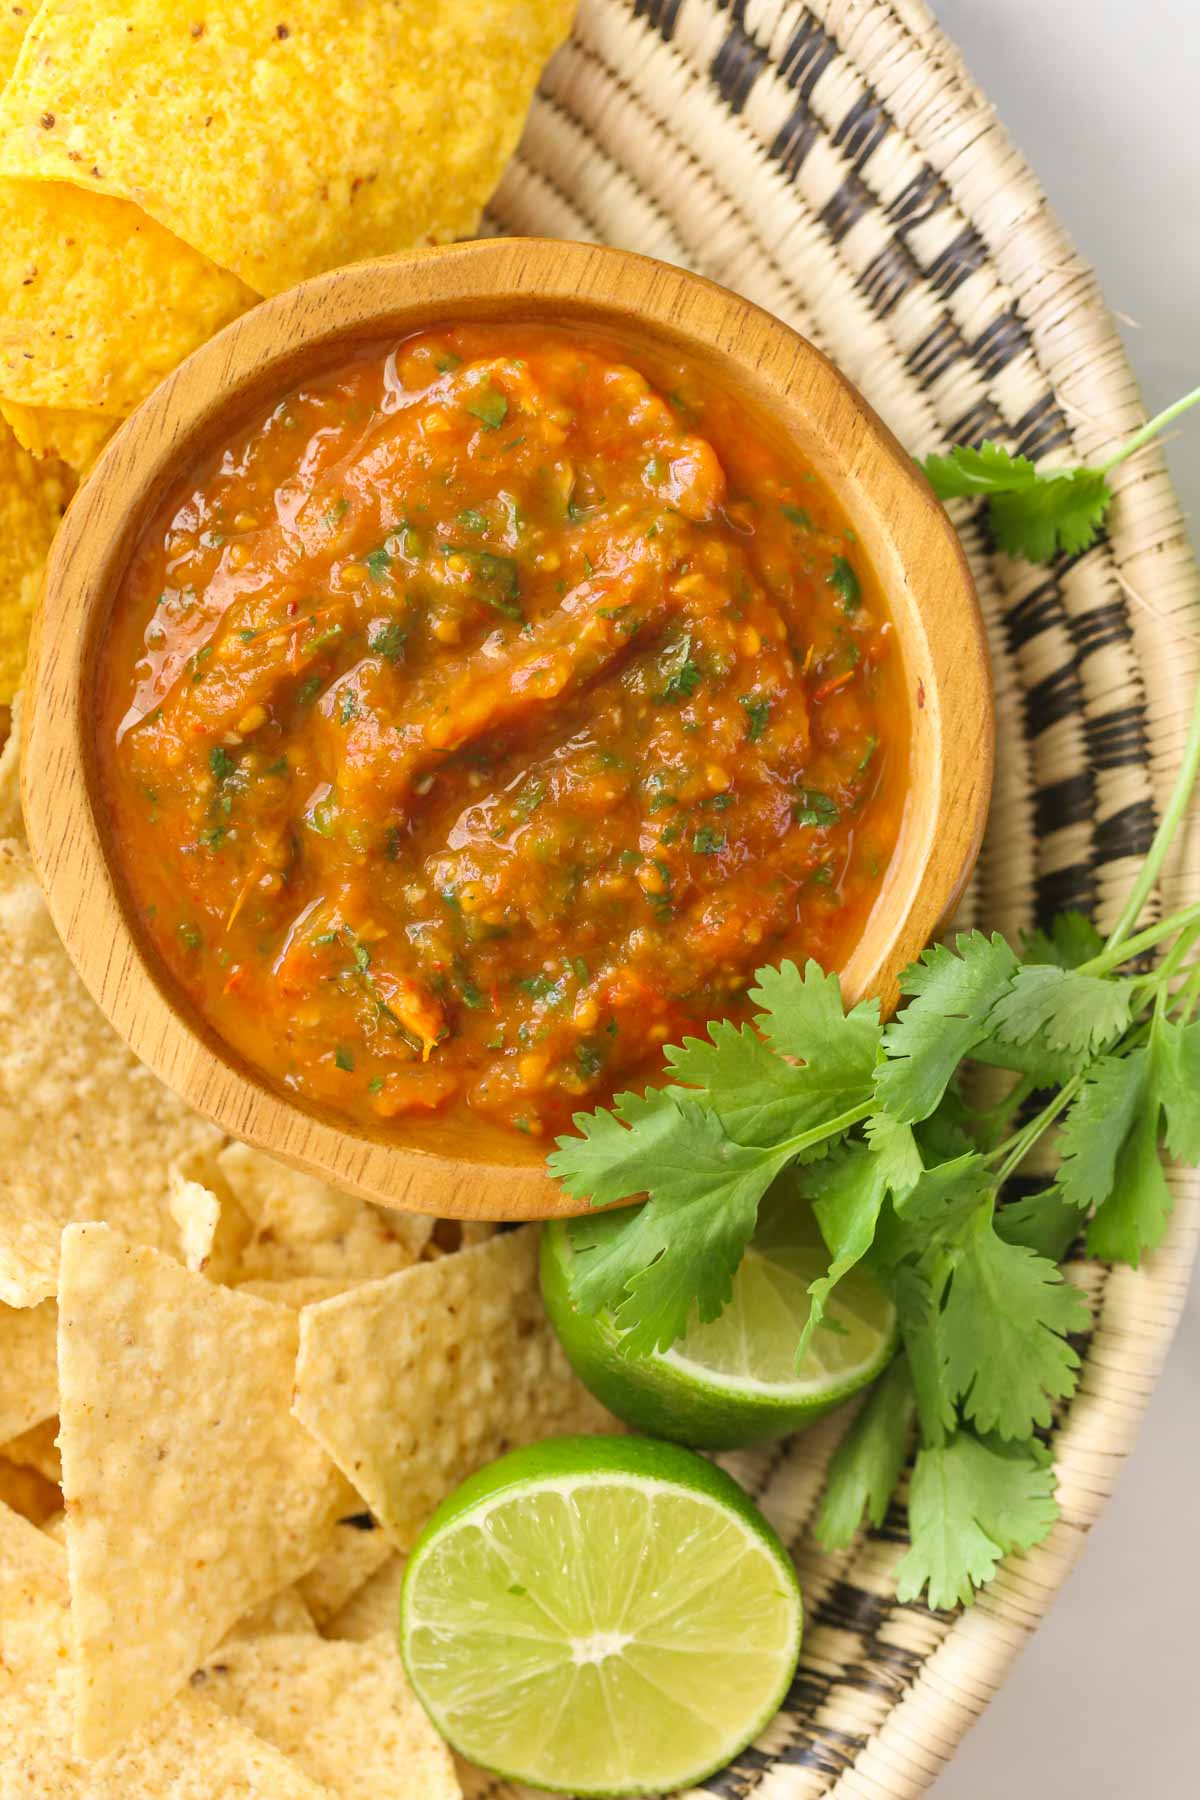 Close up shot of a small wood bowl of Roasted Tomato Salsa in a basket along with tortilla chips, fresh cilantro, and two lime halves.